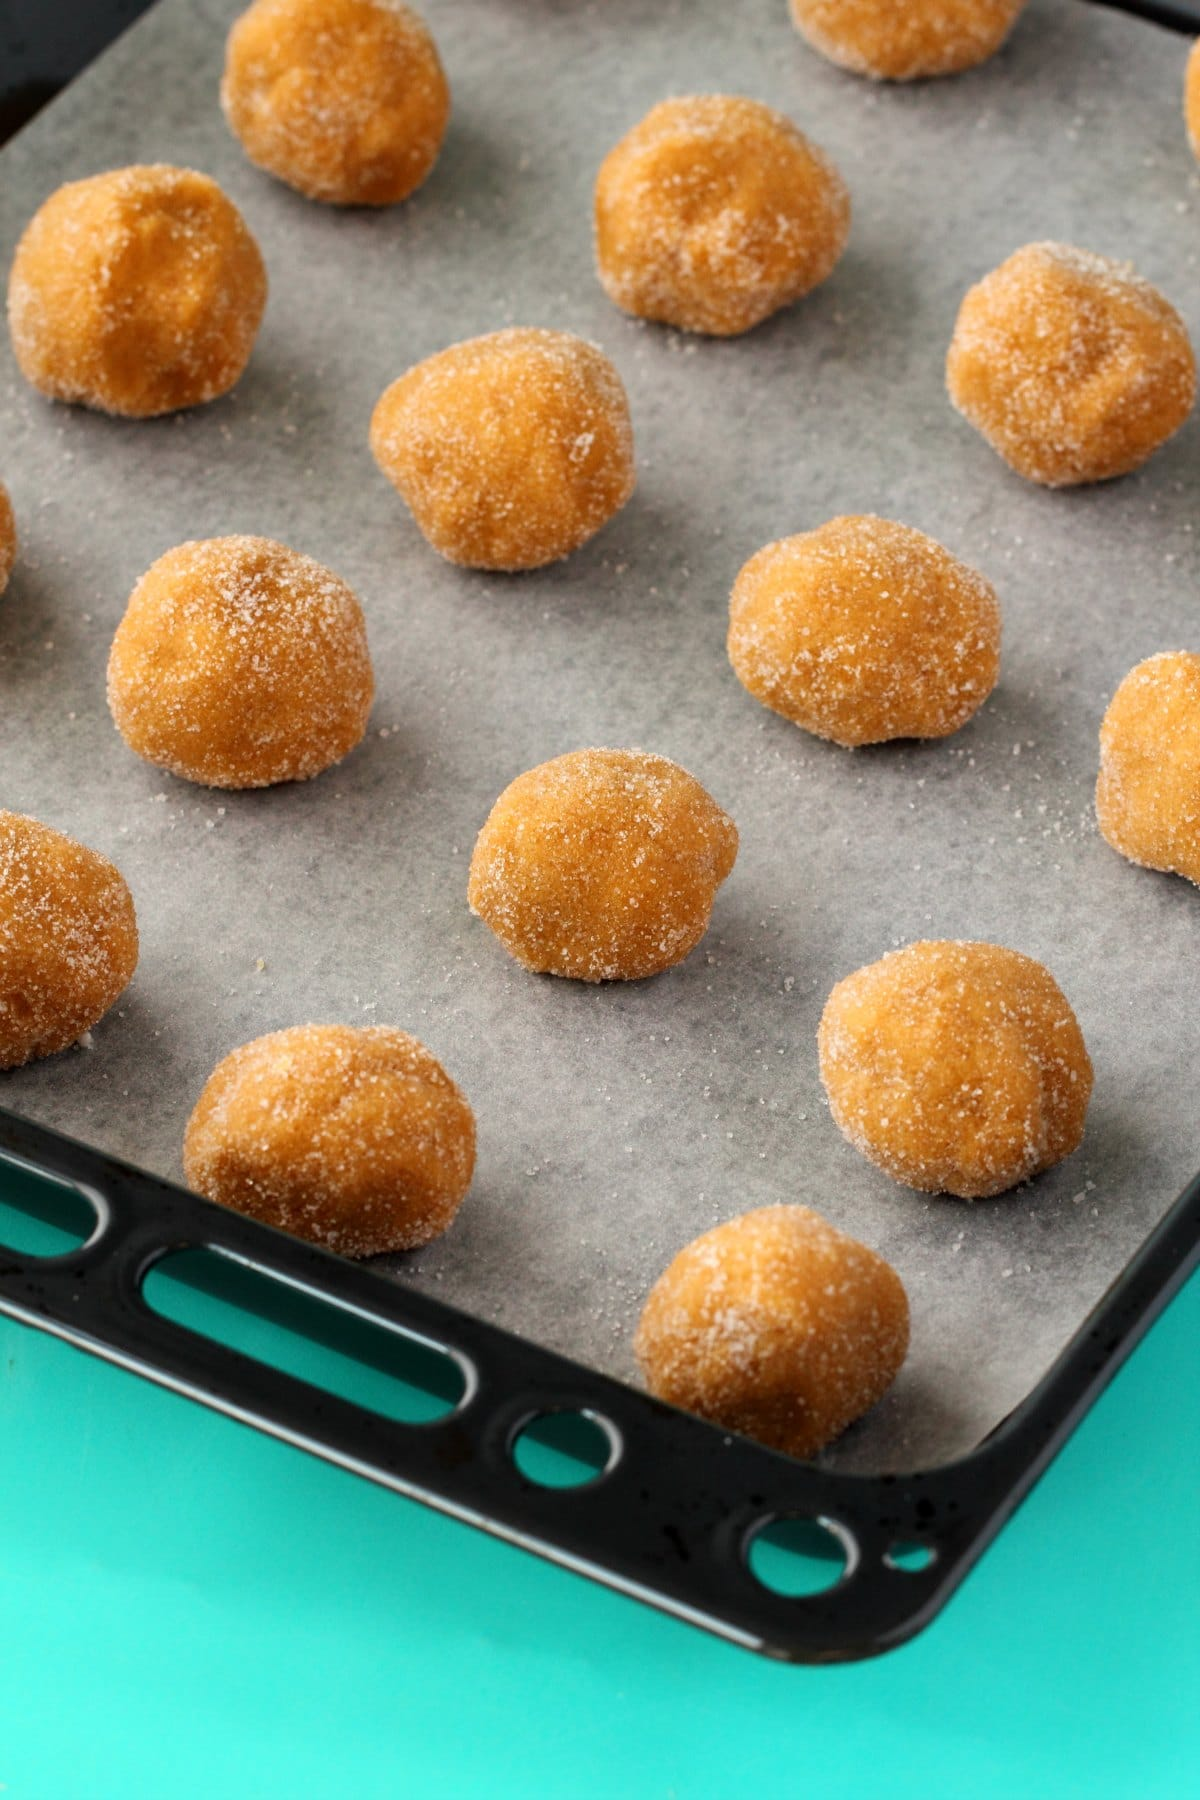 Vegan Peanut Butter Cookie dough rolled into balls on a parchment lined baking tray.